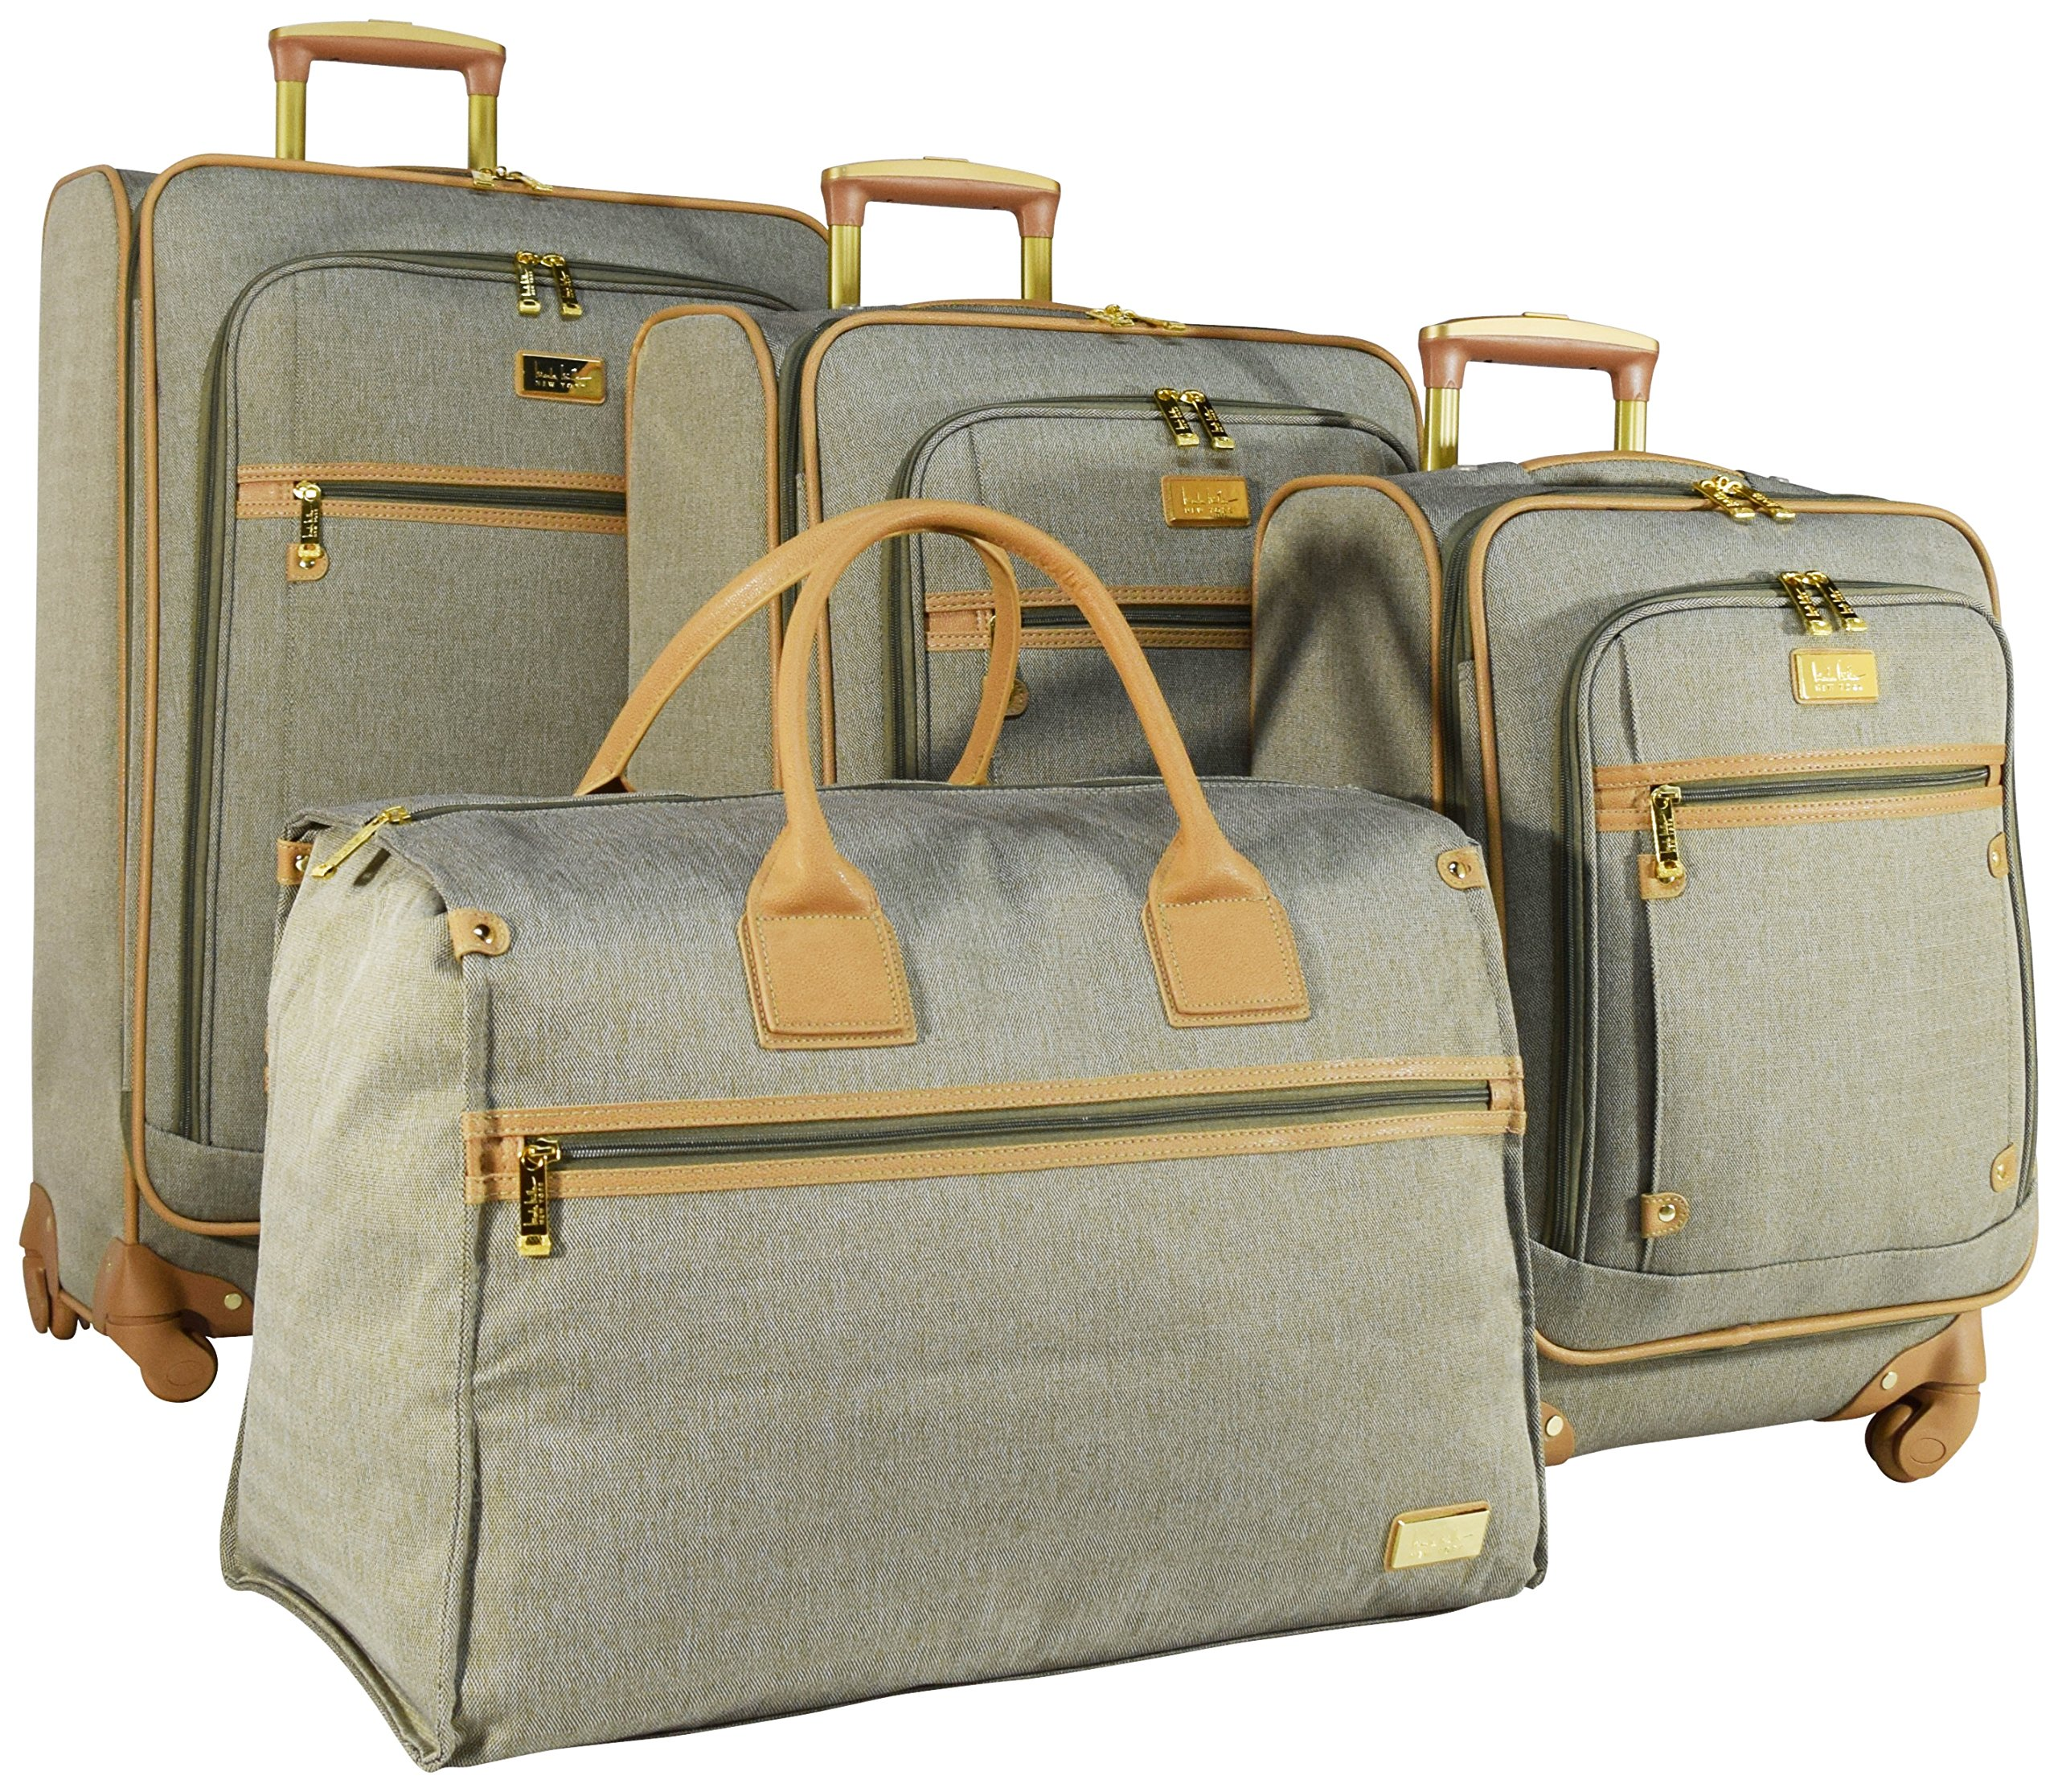 Nicole Miller New York Taylor Set of 4: Box Bag, 20'', 24'', 28'' Expandable Spinner Luggages (Green) by Nicole Miller (Image #1)